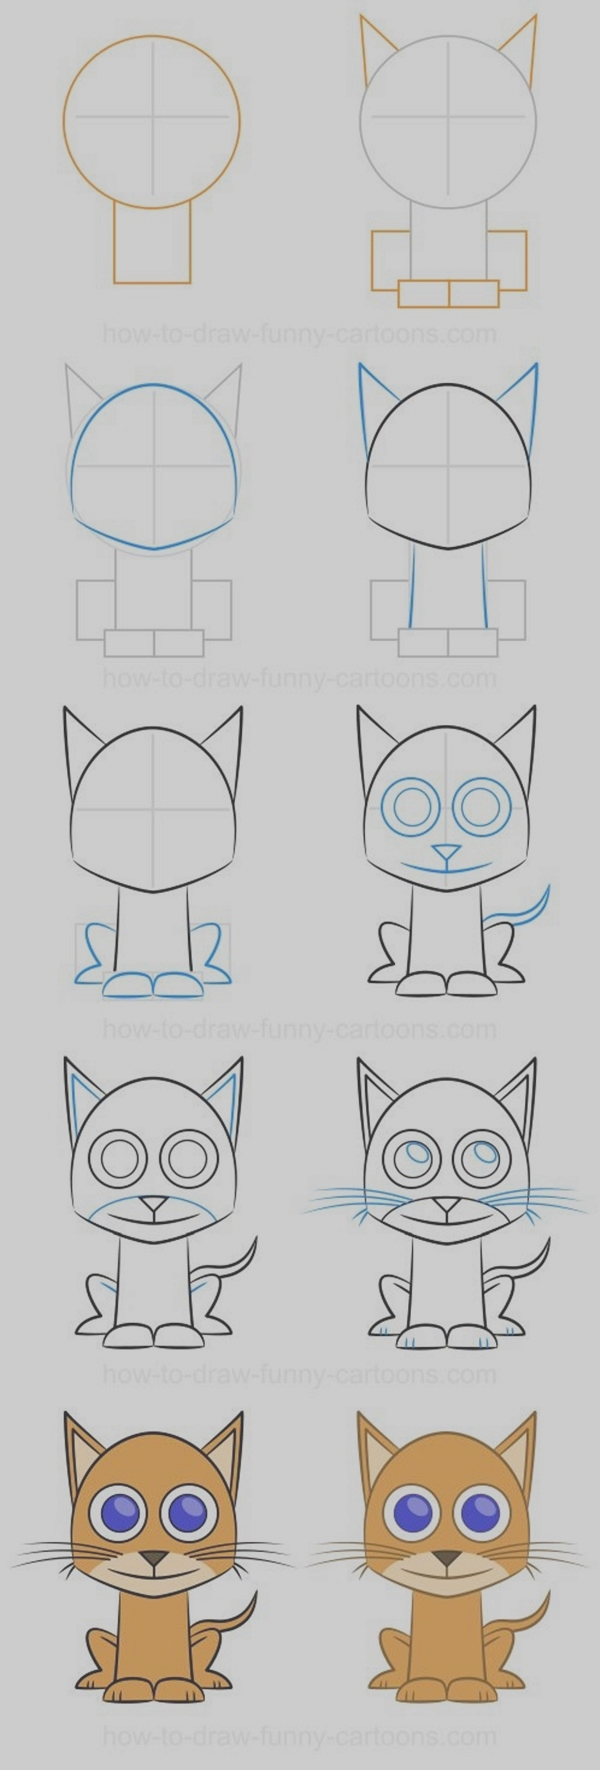 Easy Step by Step Art Drawings to Practice (34)